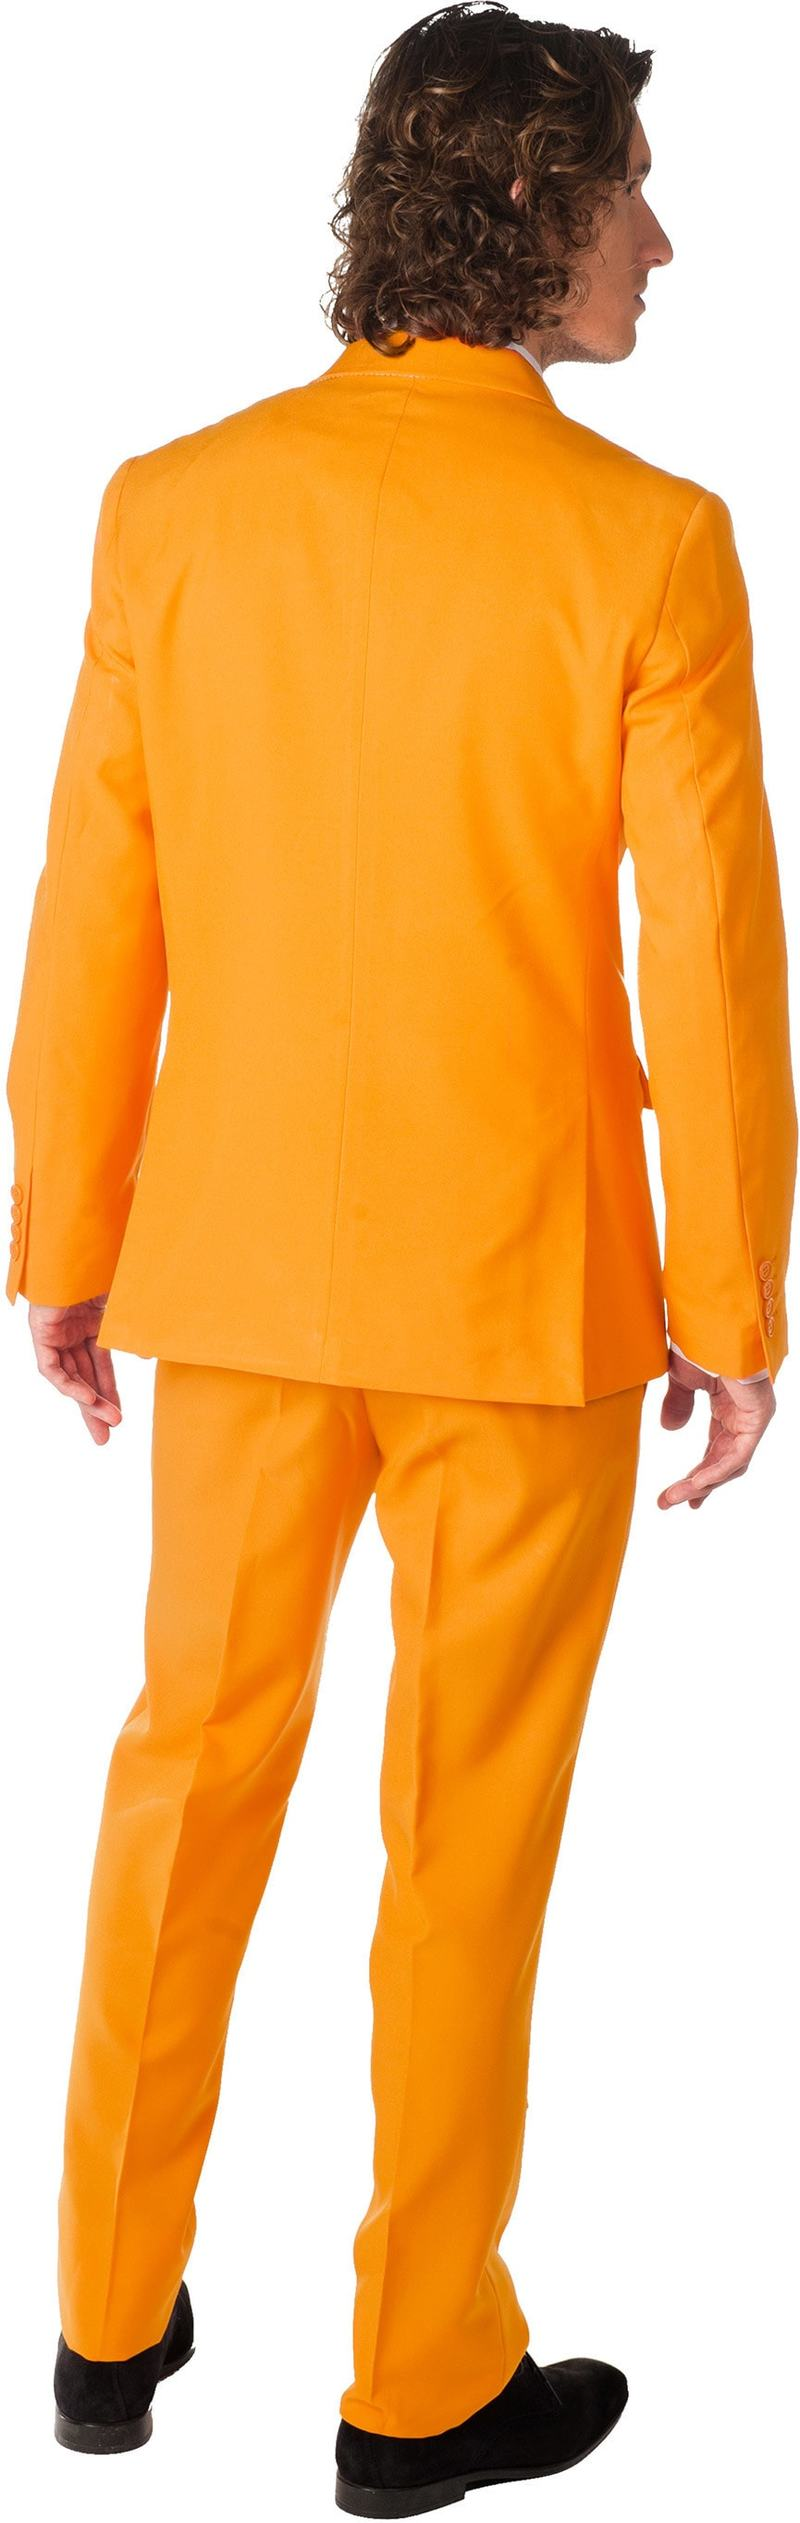 OppoSuits Orange Suit photo 1